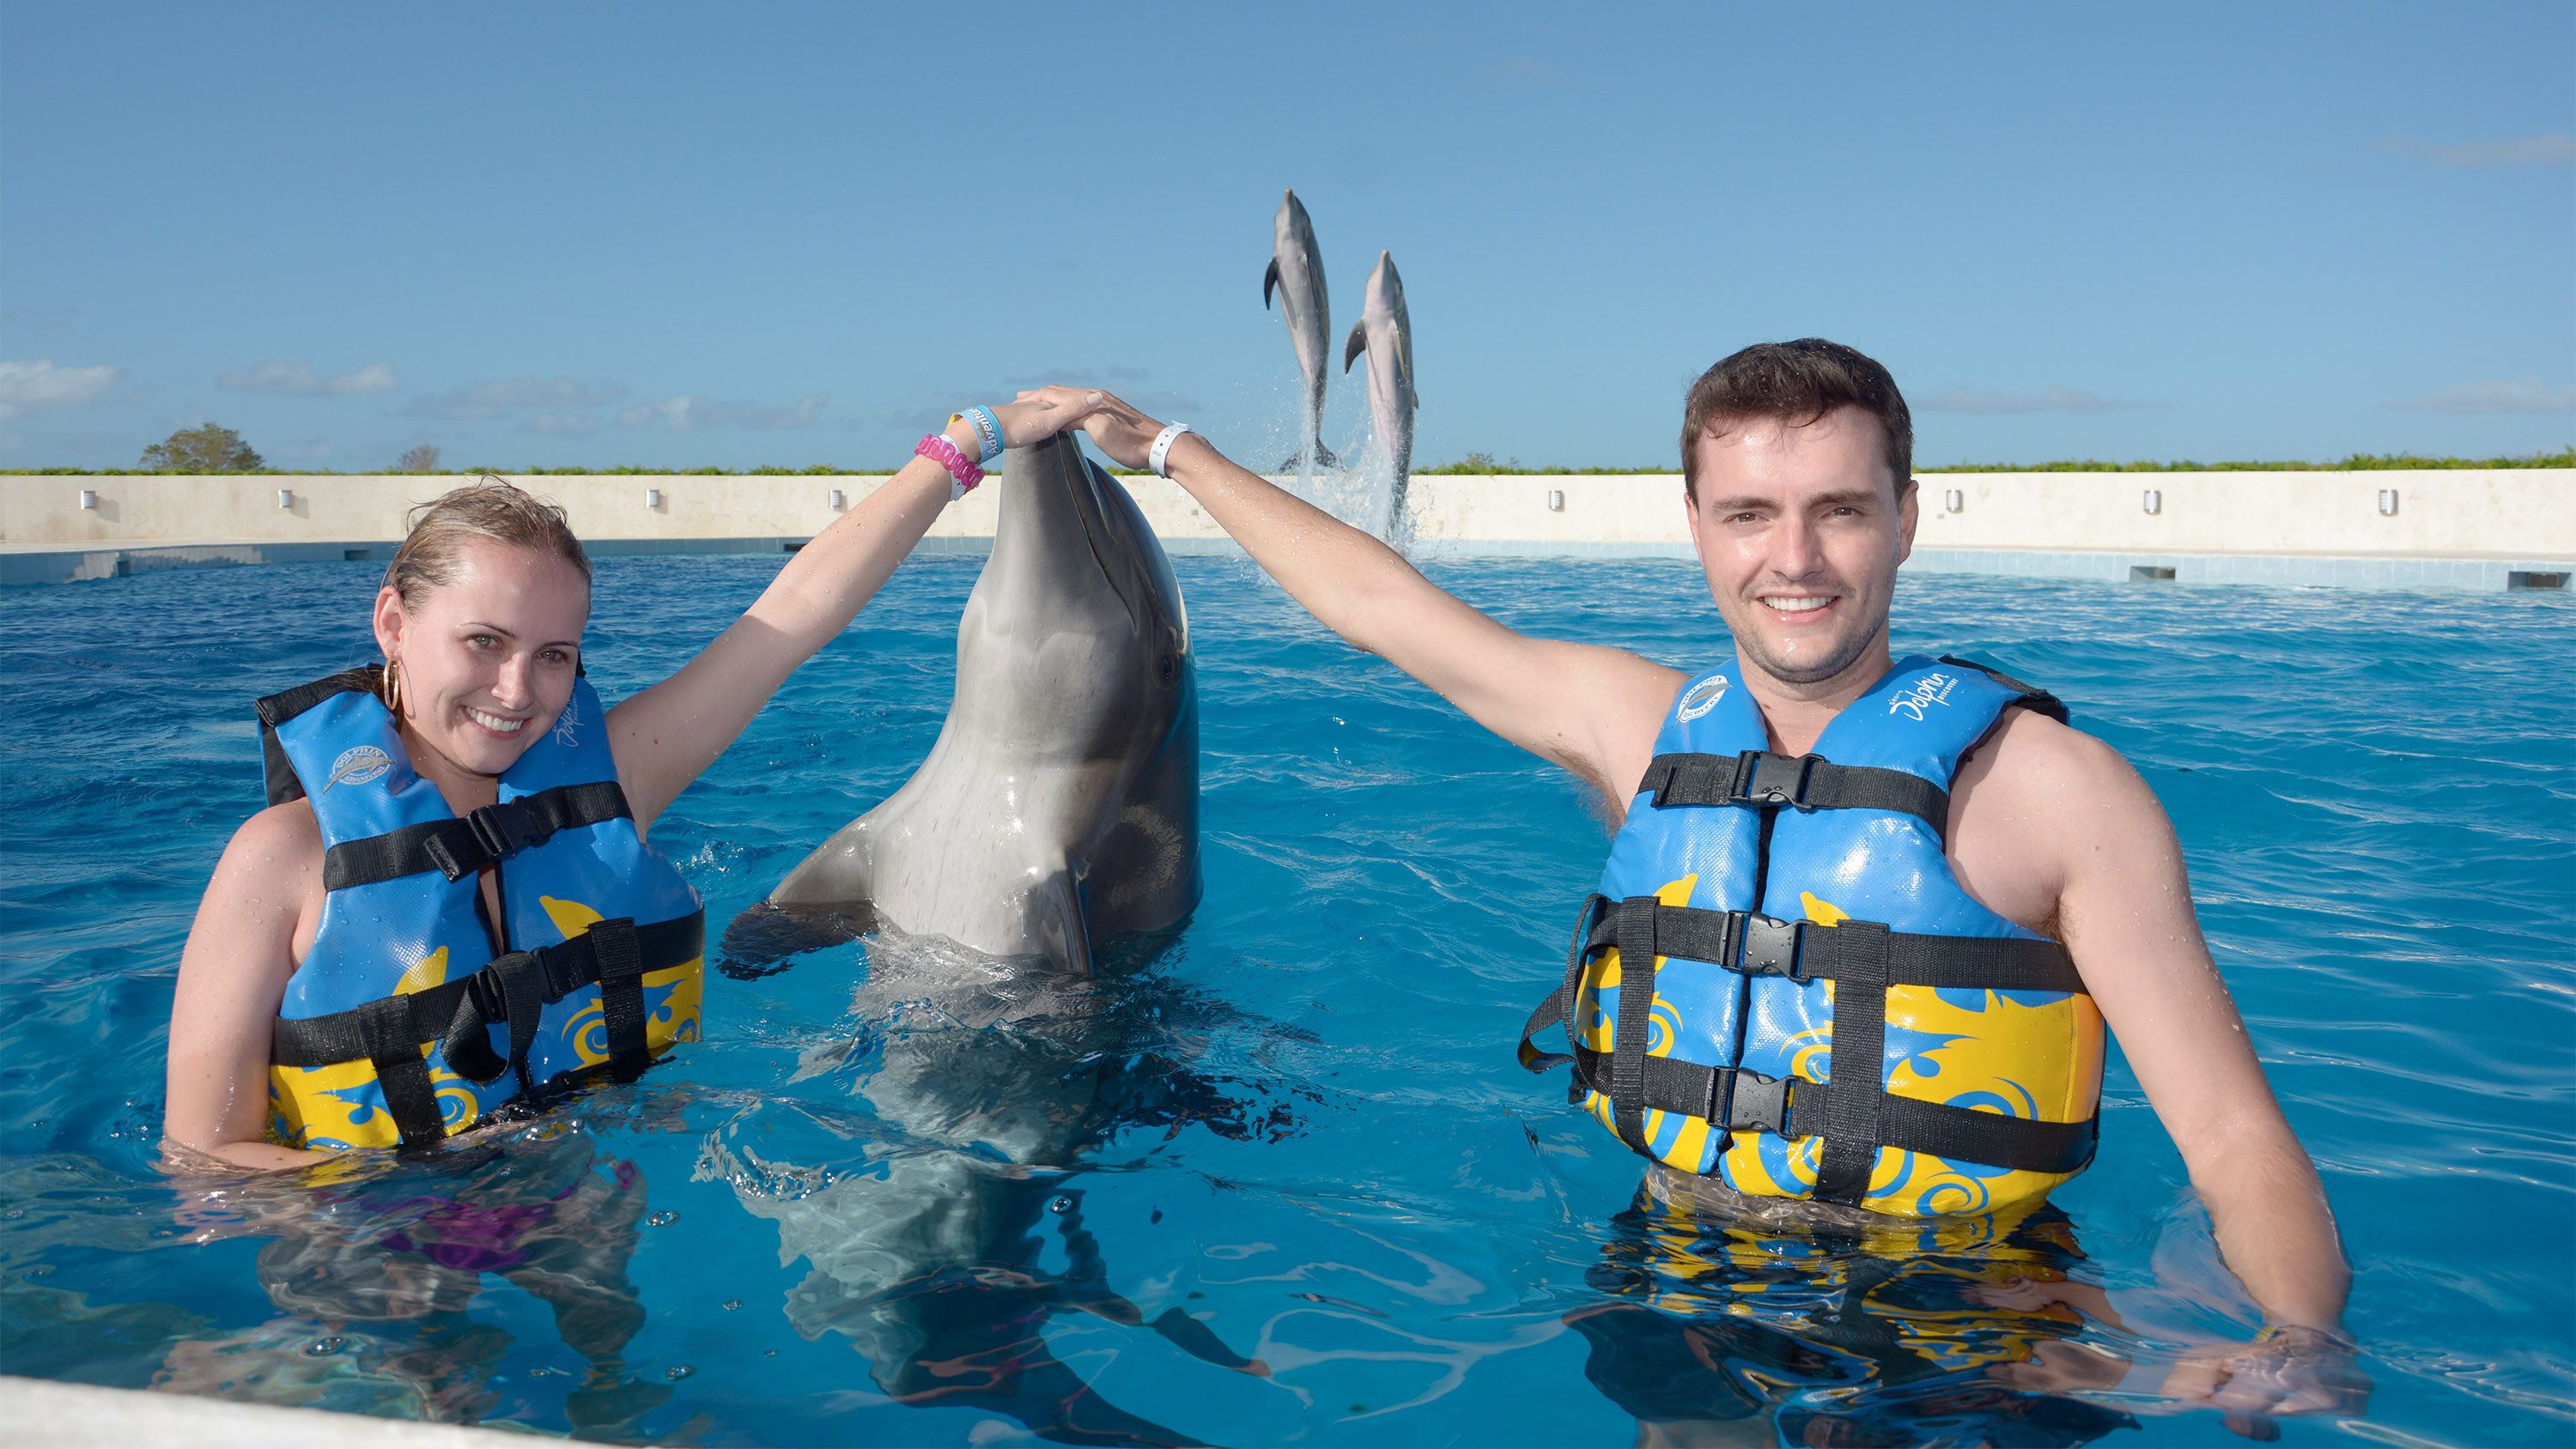 Couple on the Dolphin Swim Adventure in Punta Cana